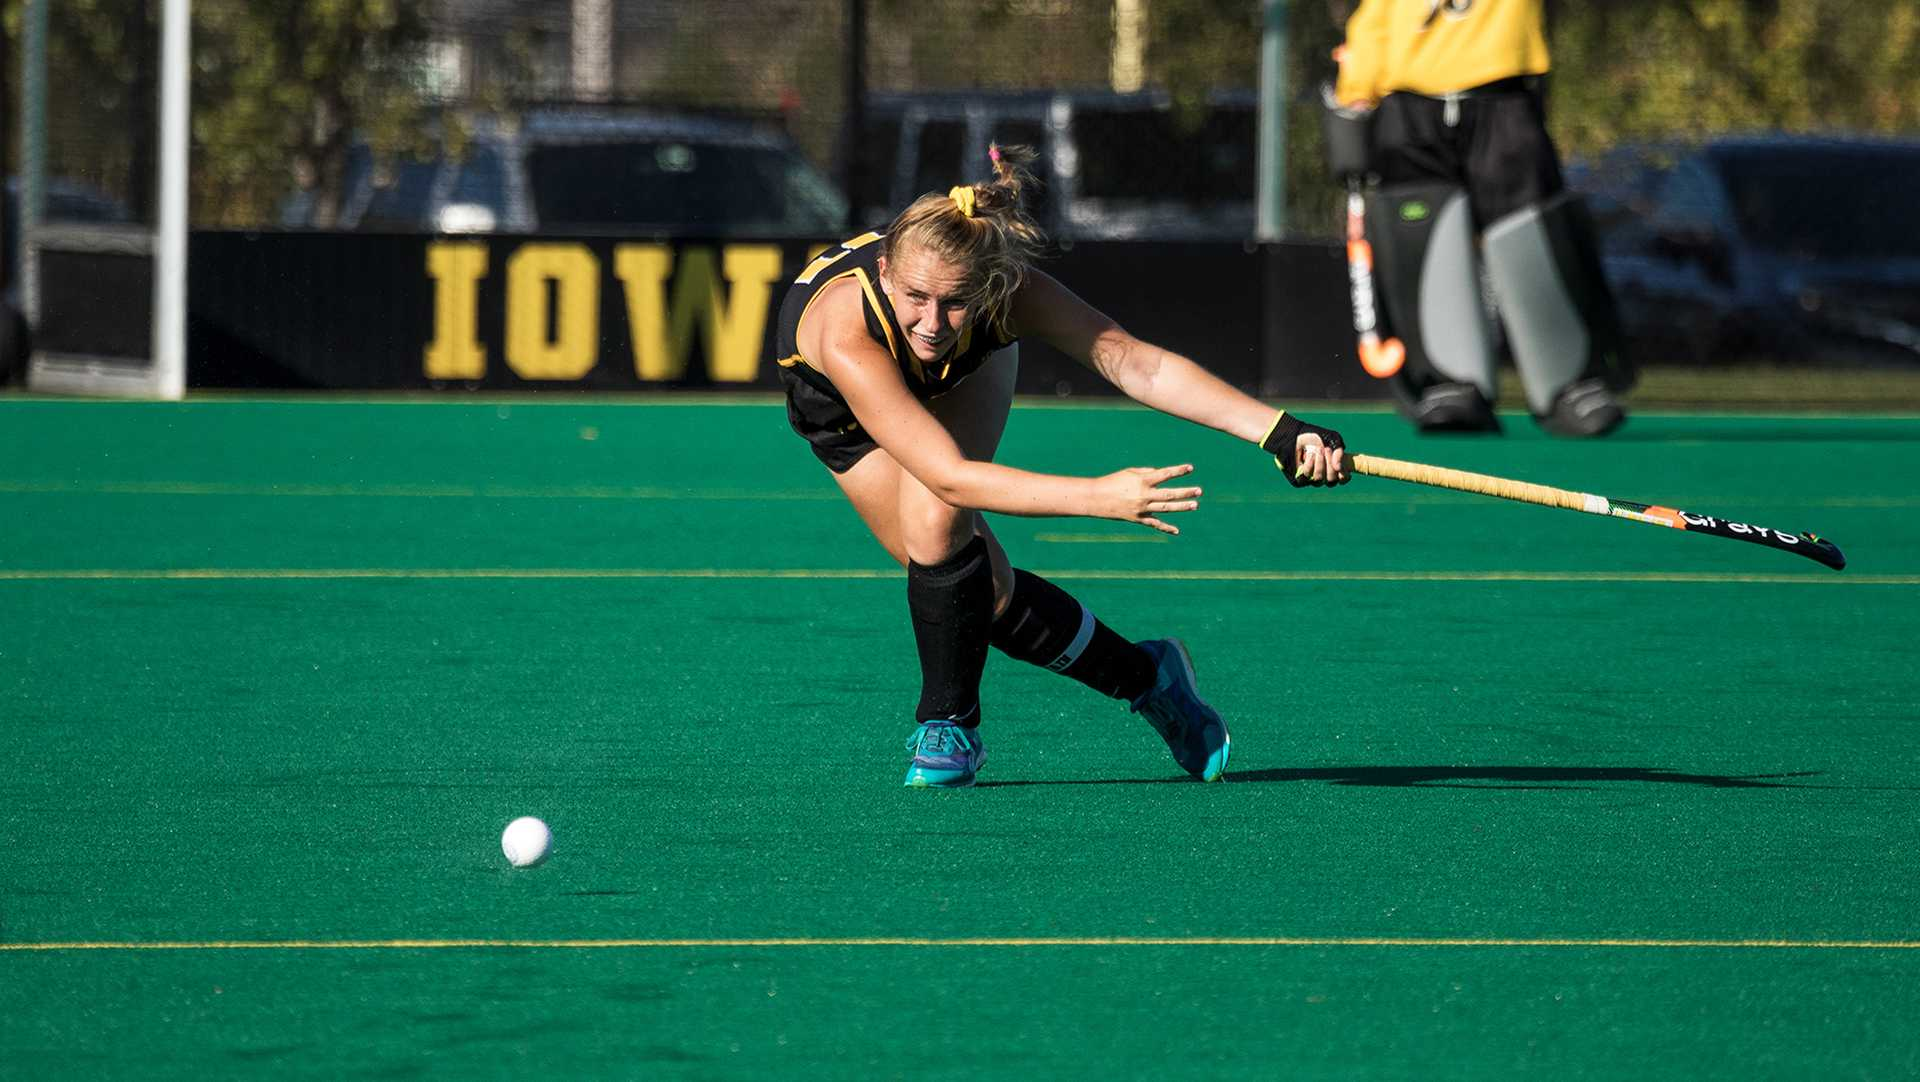 Iowa's Katie Birch passes the ball during a match against the University of Indiana field hockey team on Friday, Sept. 29, 2017. Iowa won the match 4-3. (David Harmantas/The Daily Iowan)